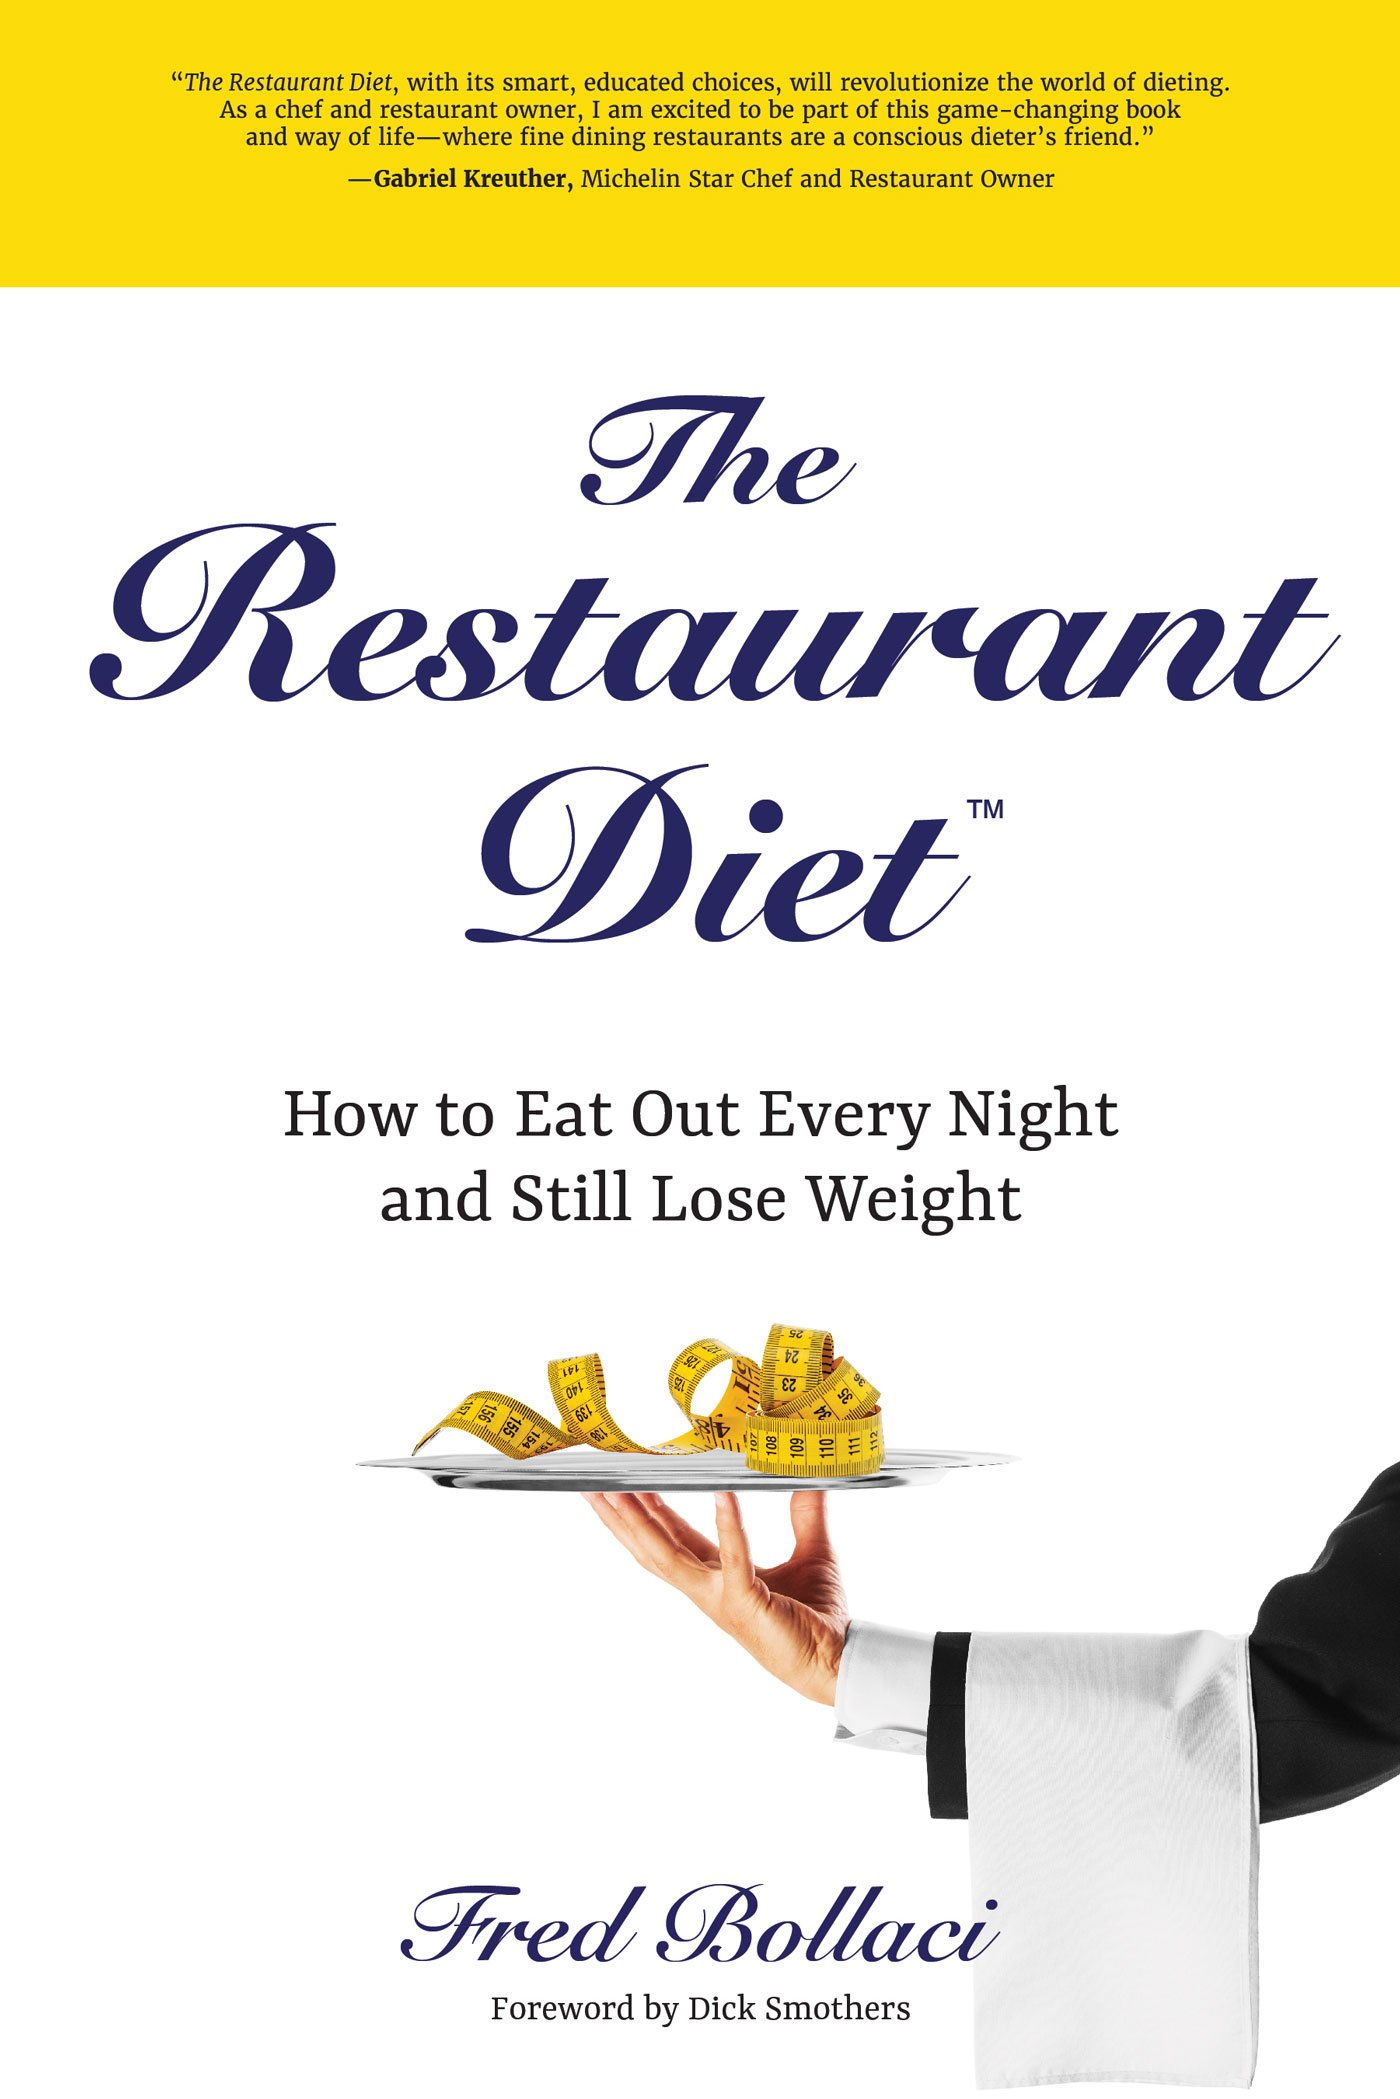 The Restaurant Diet: How to Eat Out Every Night and Still Lose Weigh